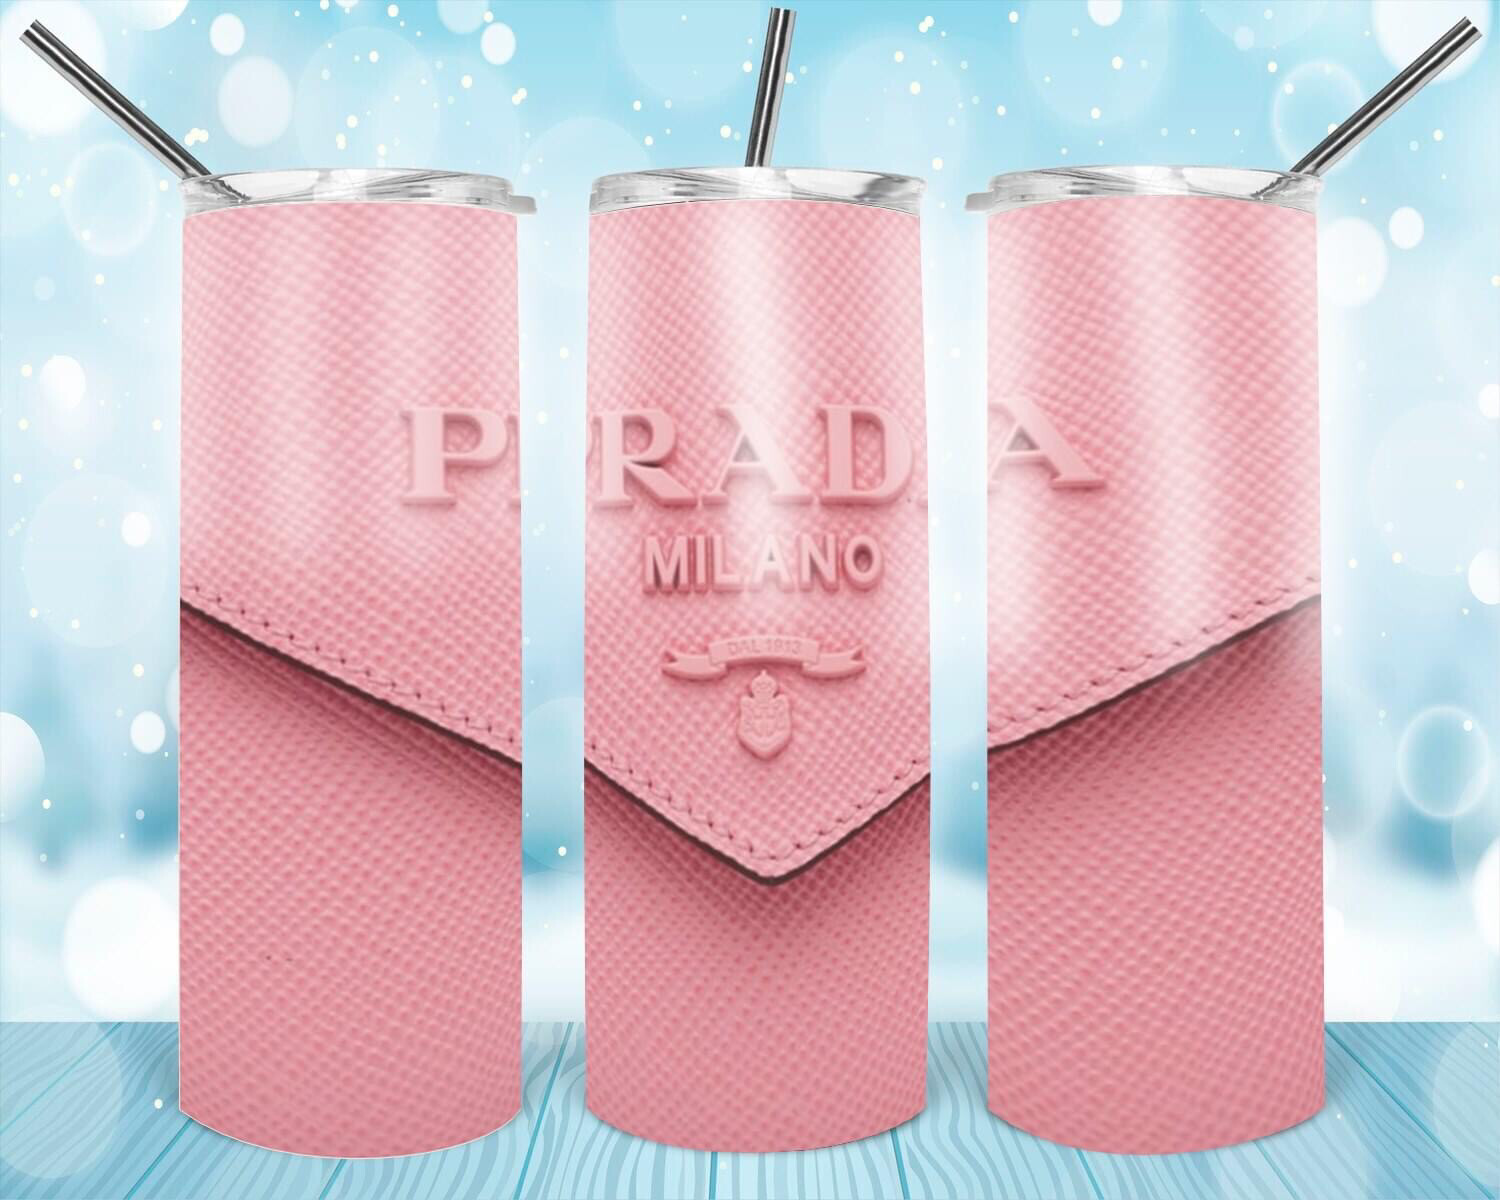 Pink Prada Leather Look Tumbler